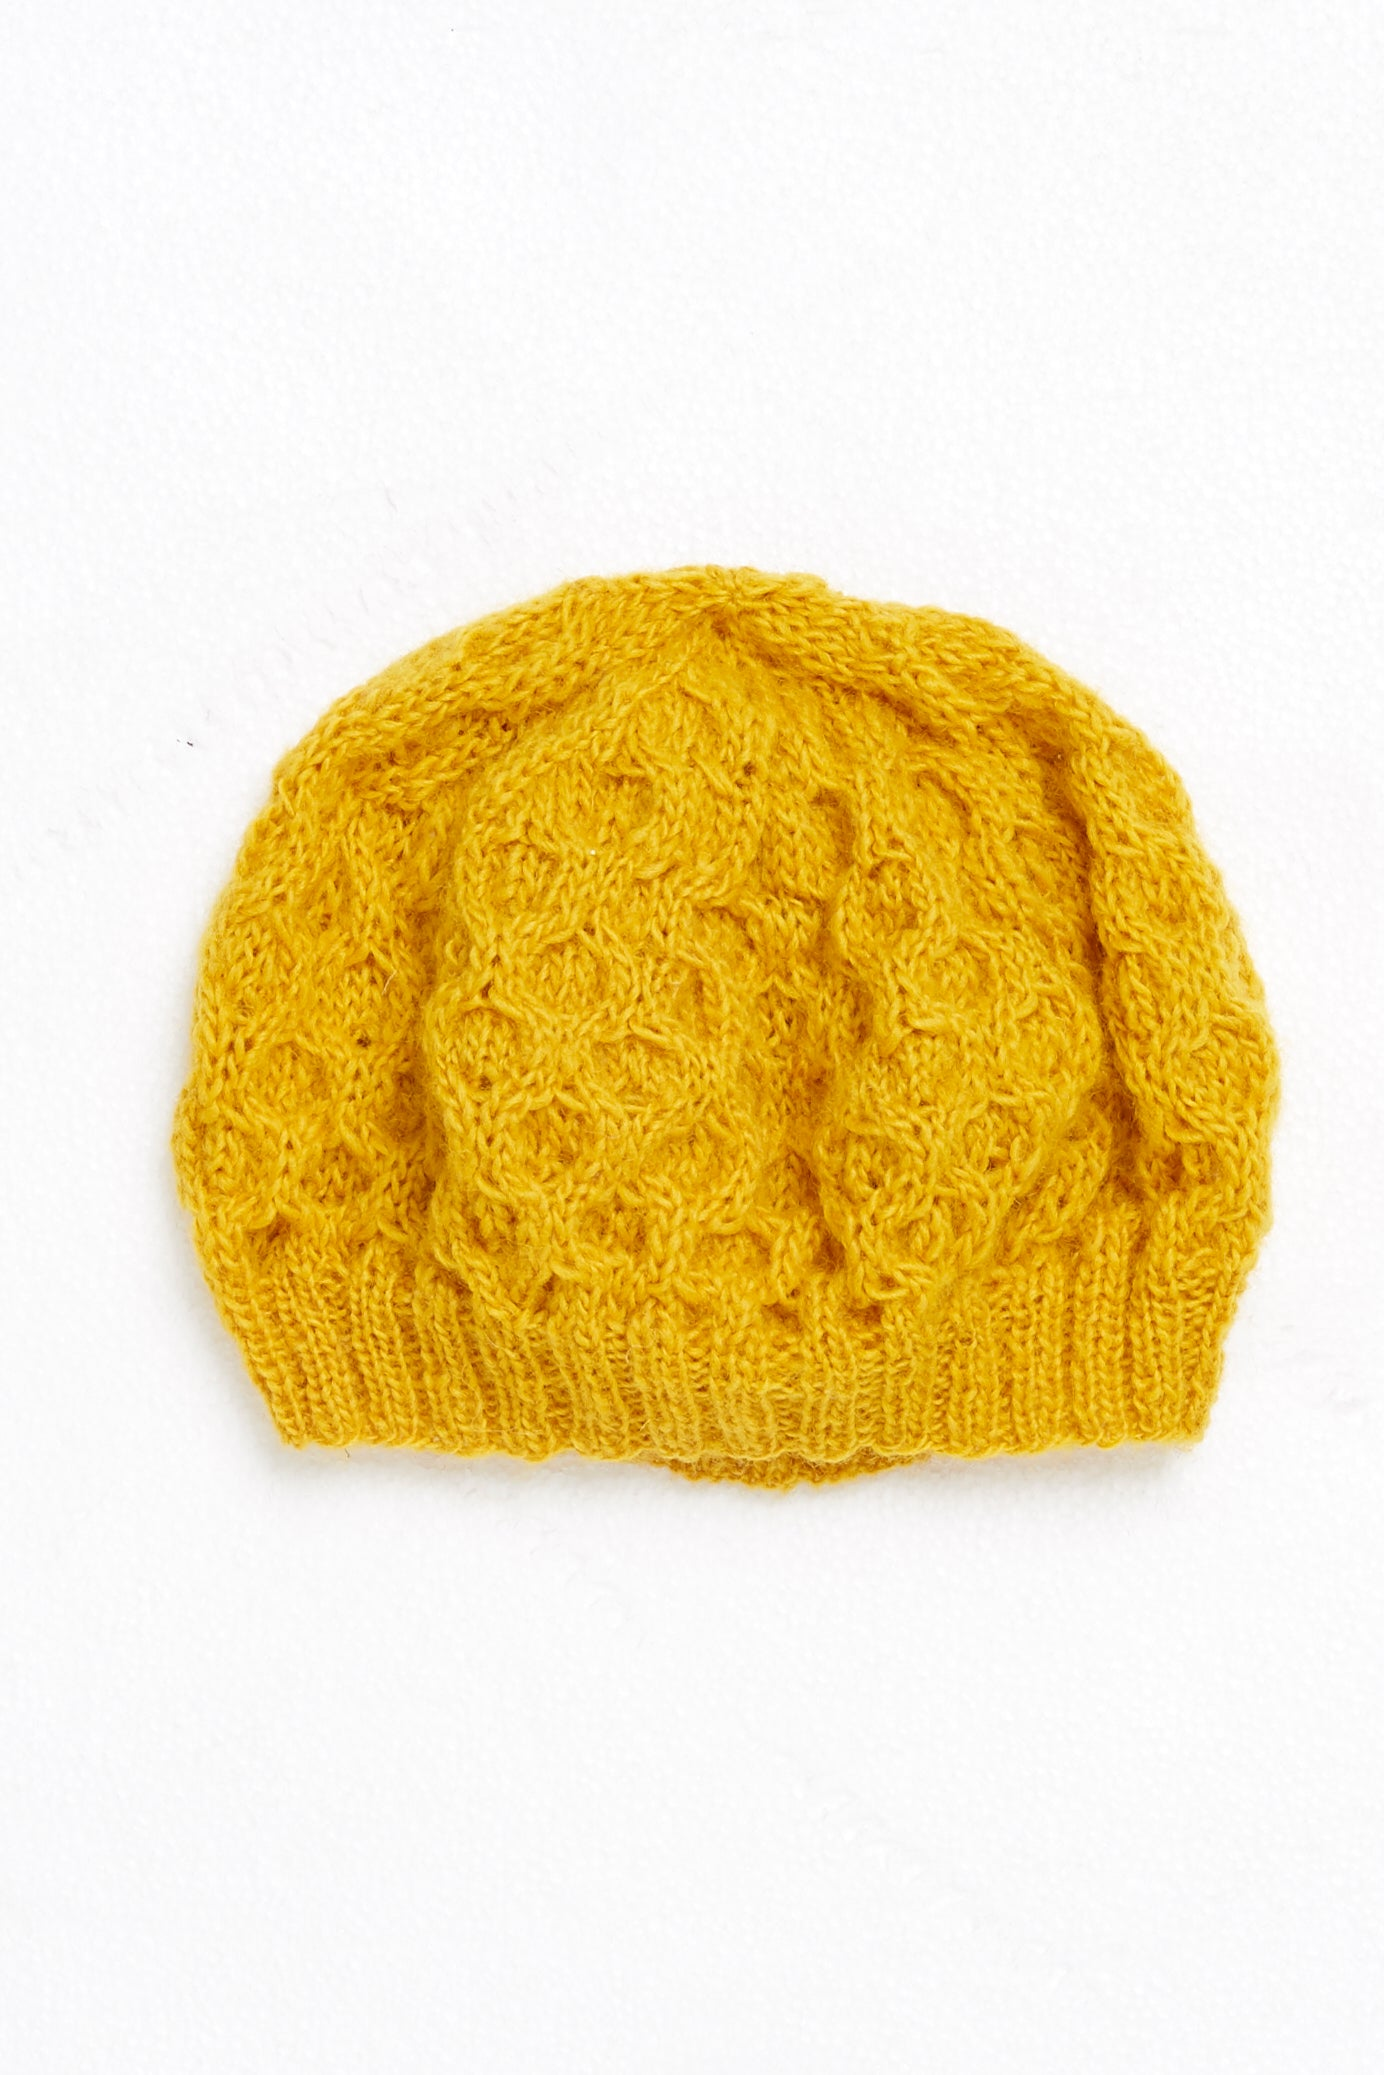 Honeycomb Beret-Hat-Sancho's Dress